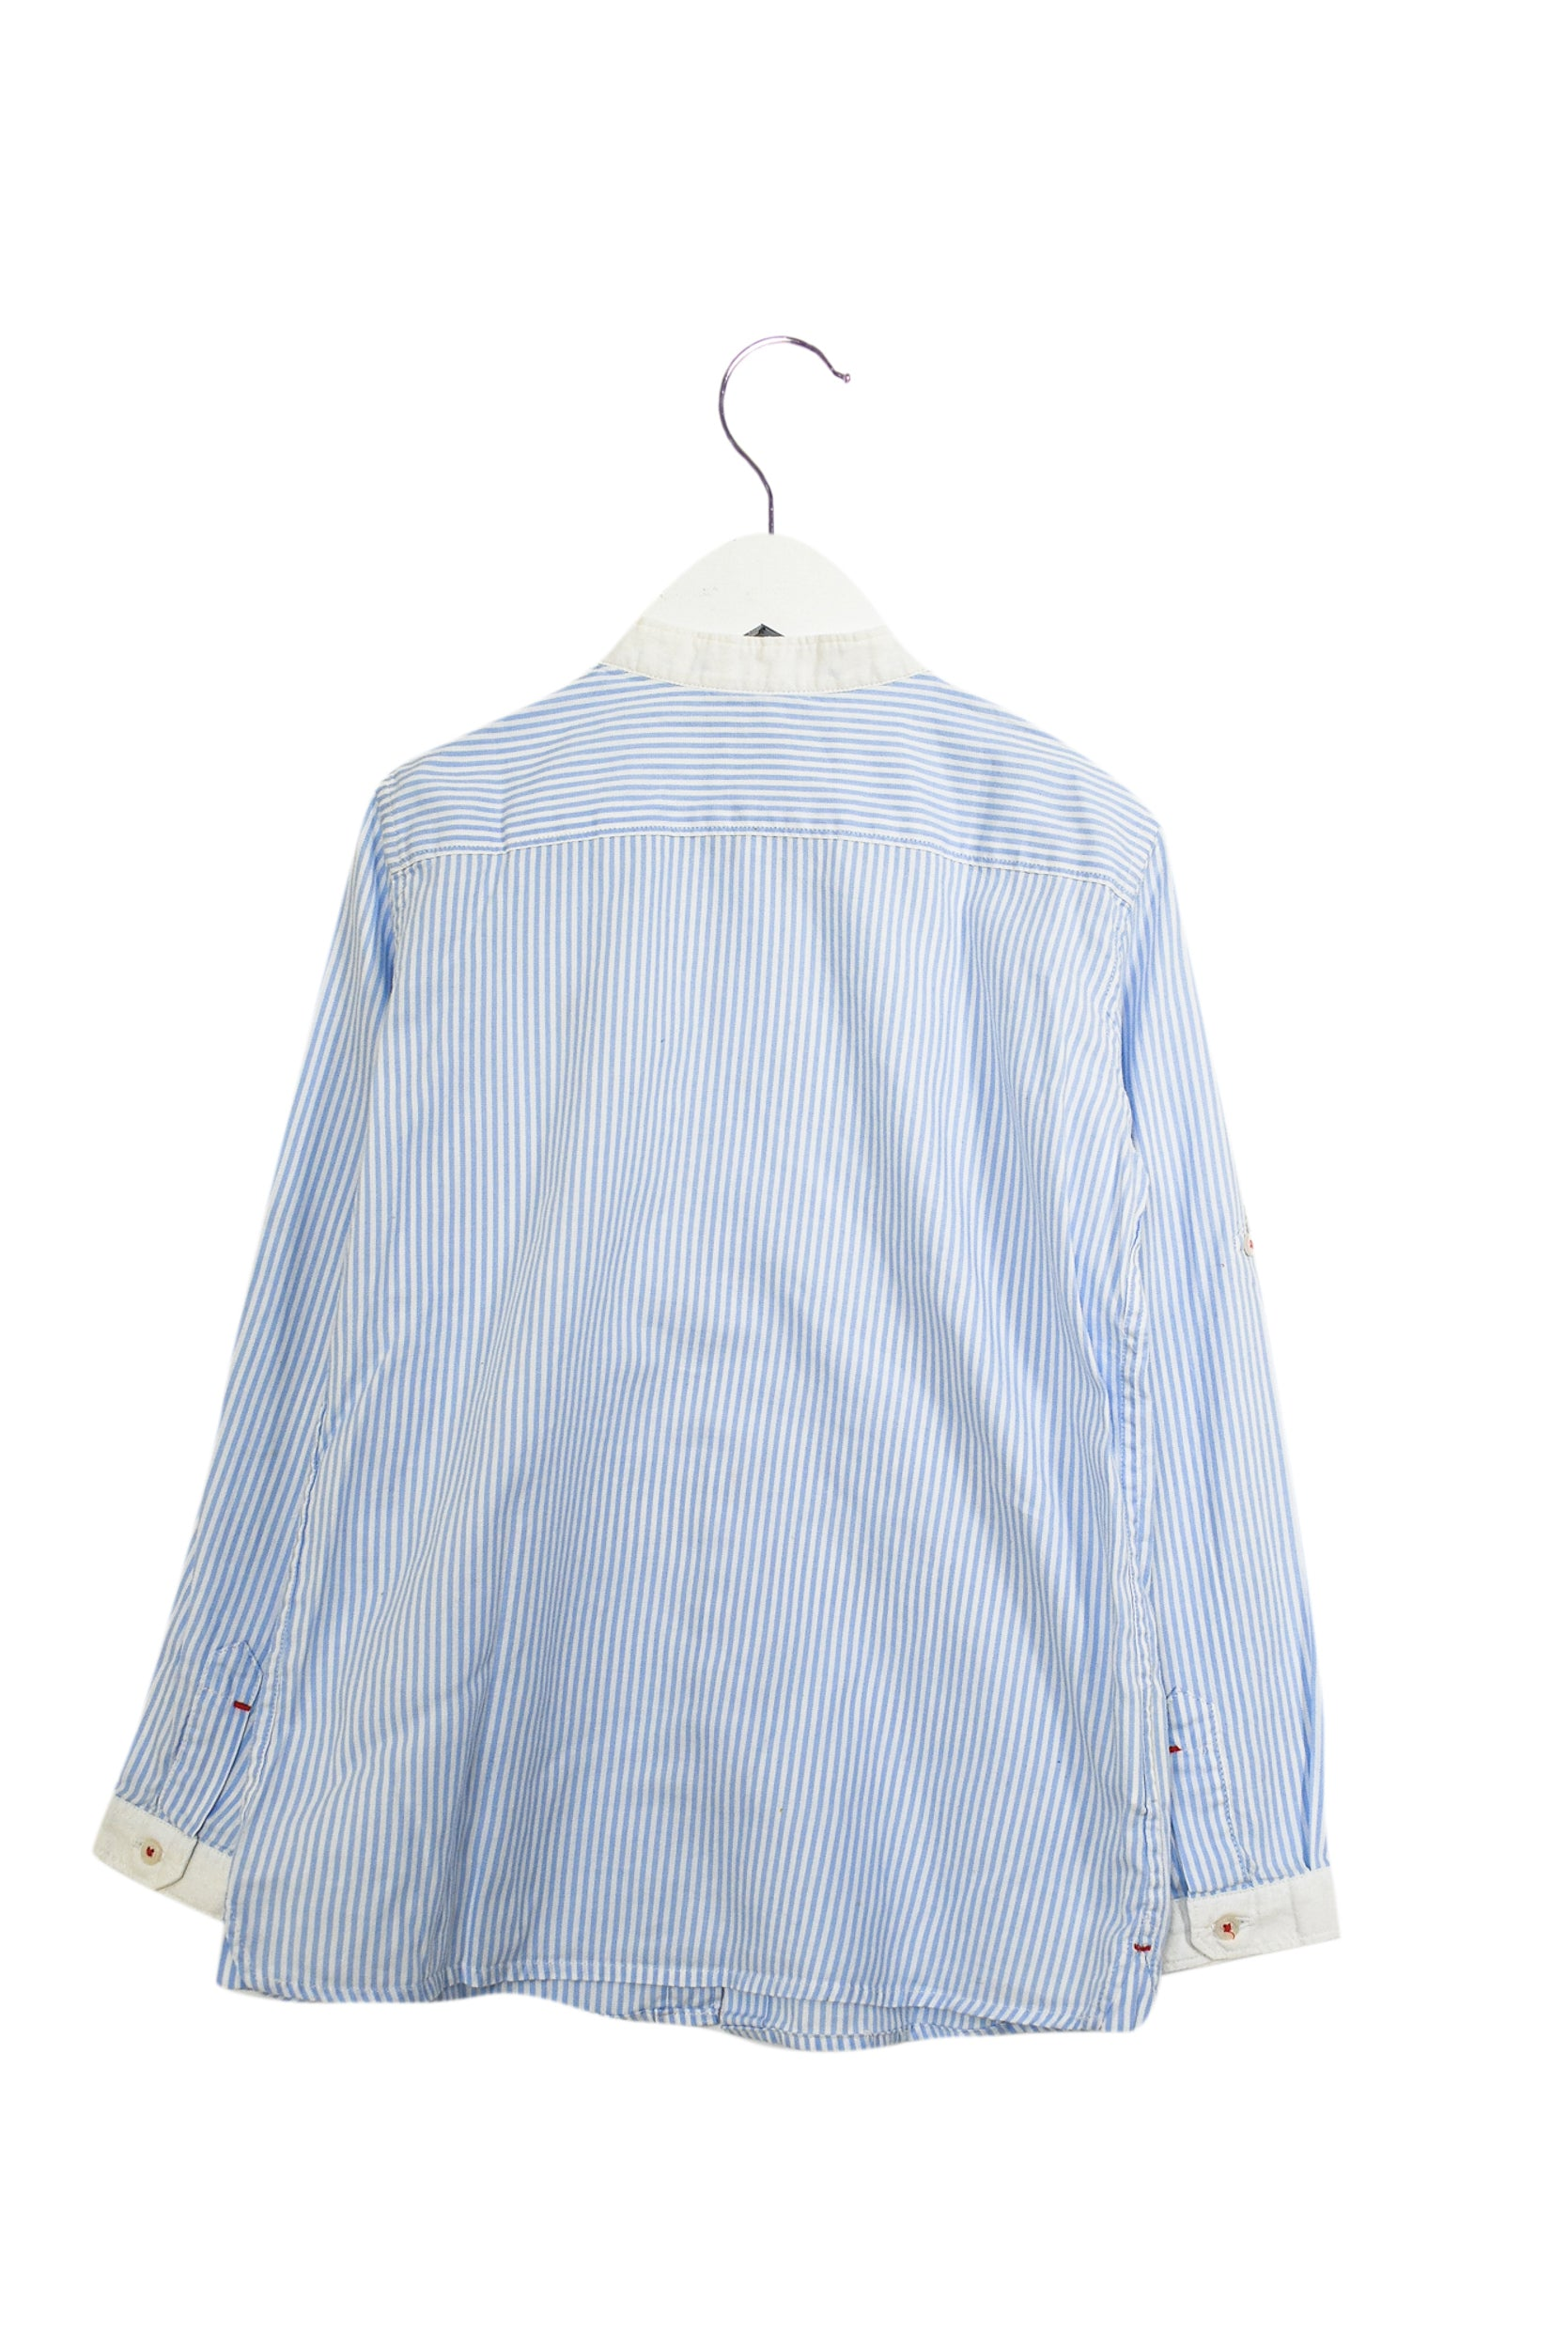 Shirt 5T at Retykle